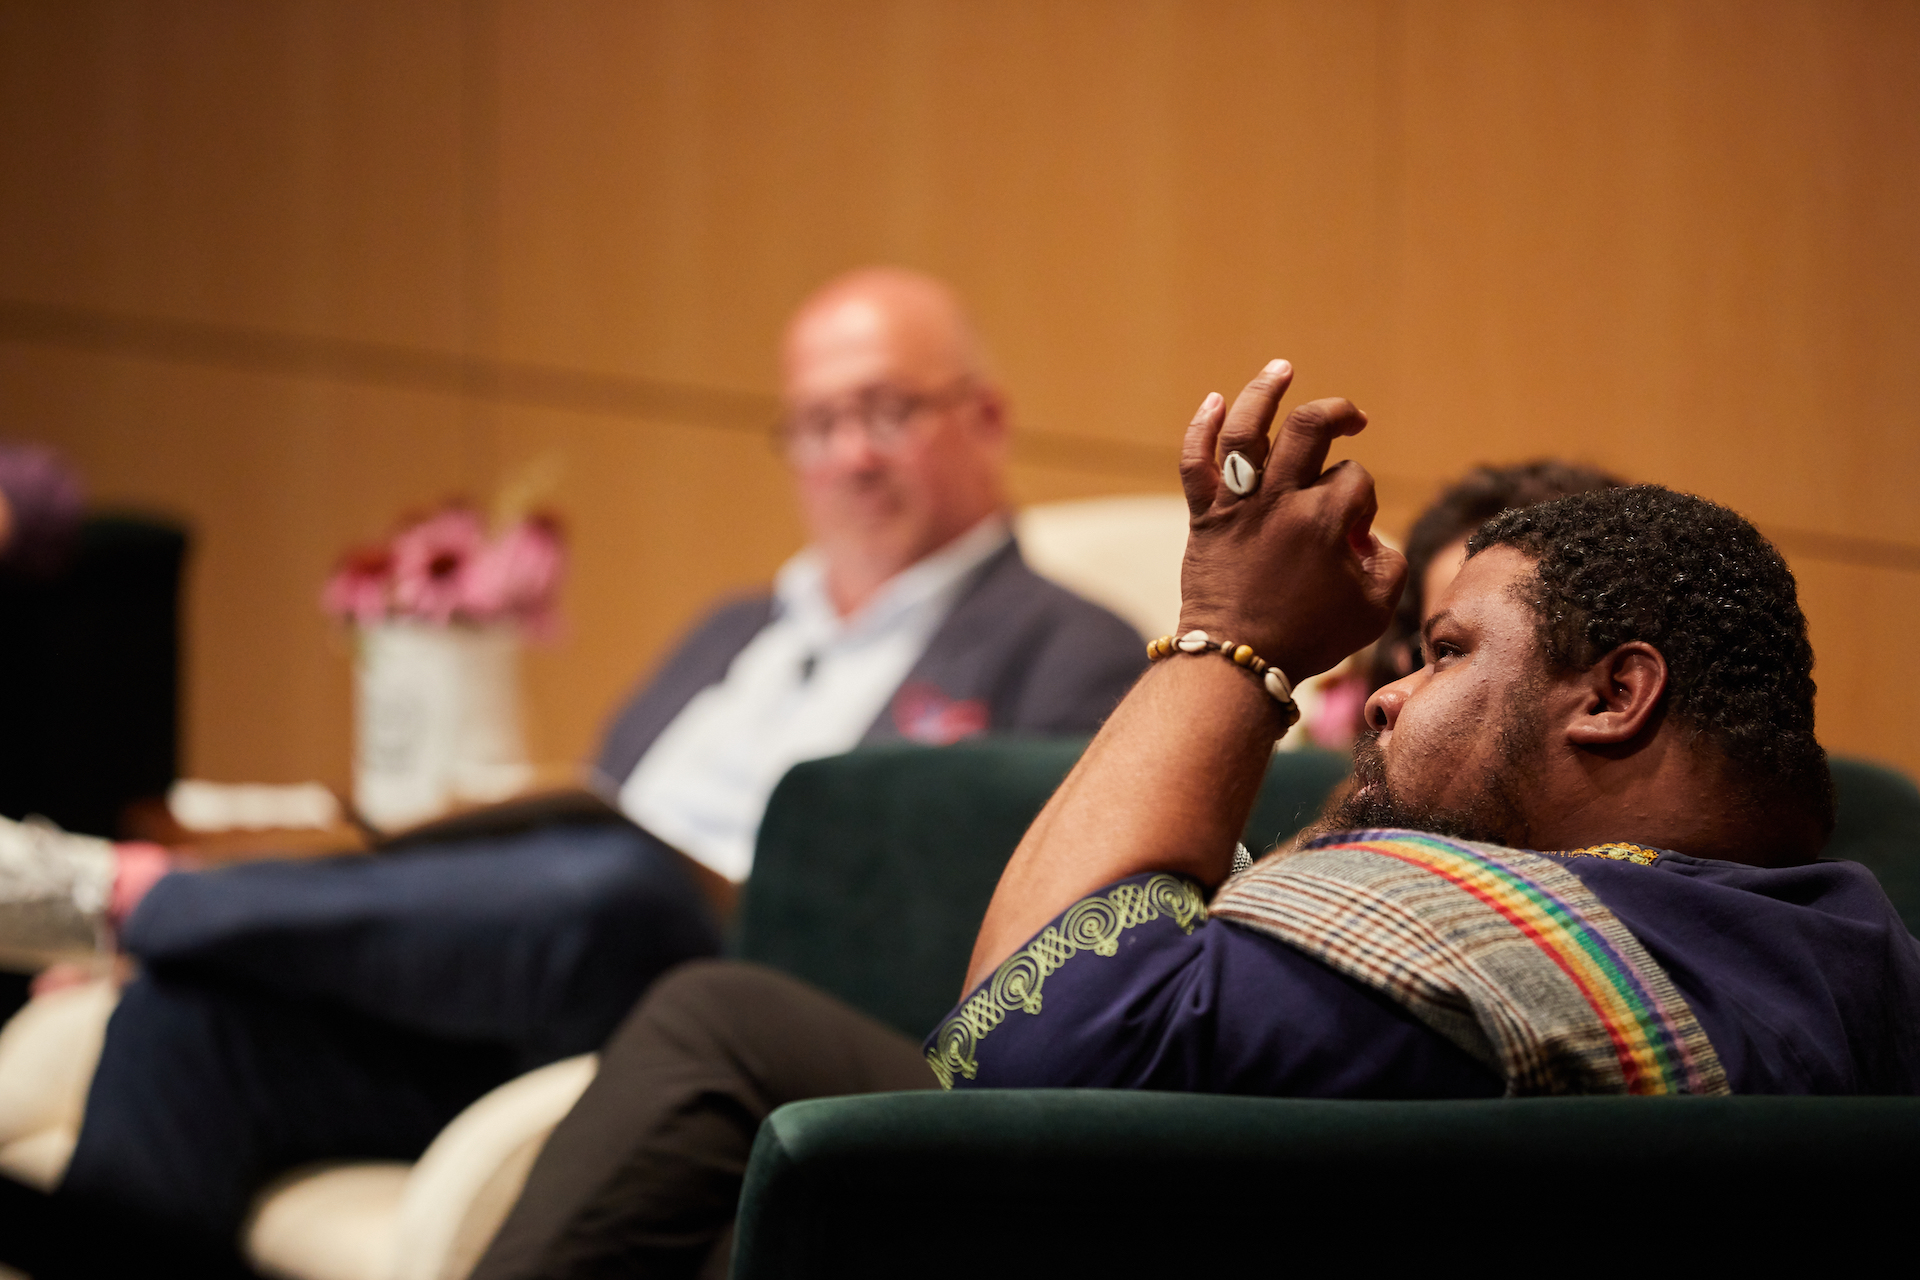 Andrew Zimmern, Tanya Holland and More Gather to Discuss Change in the Culinary Industry